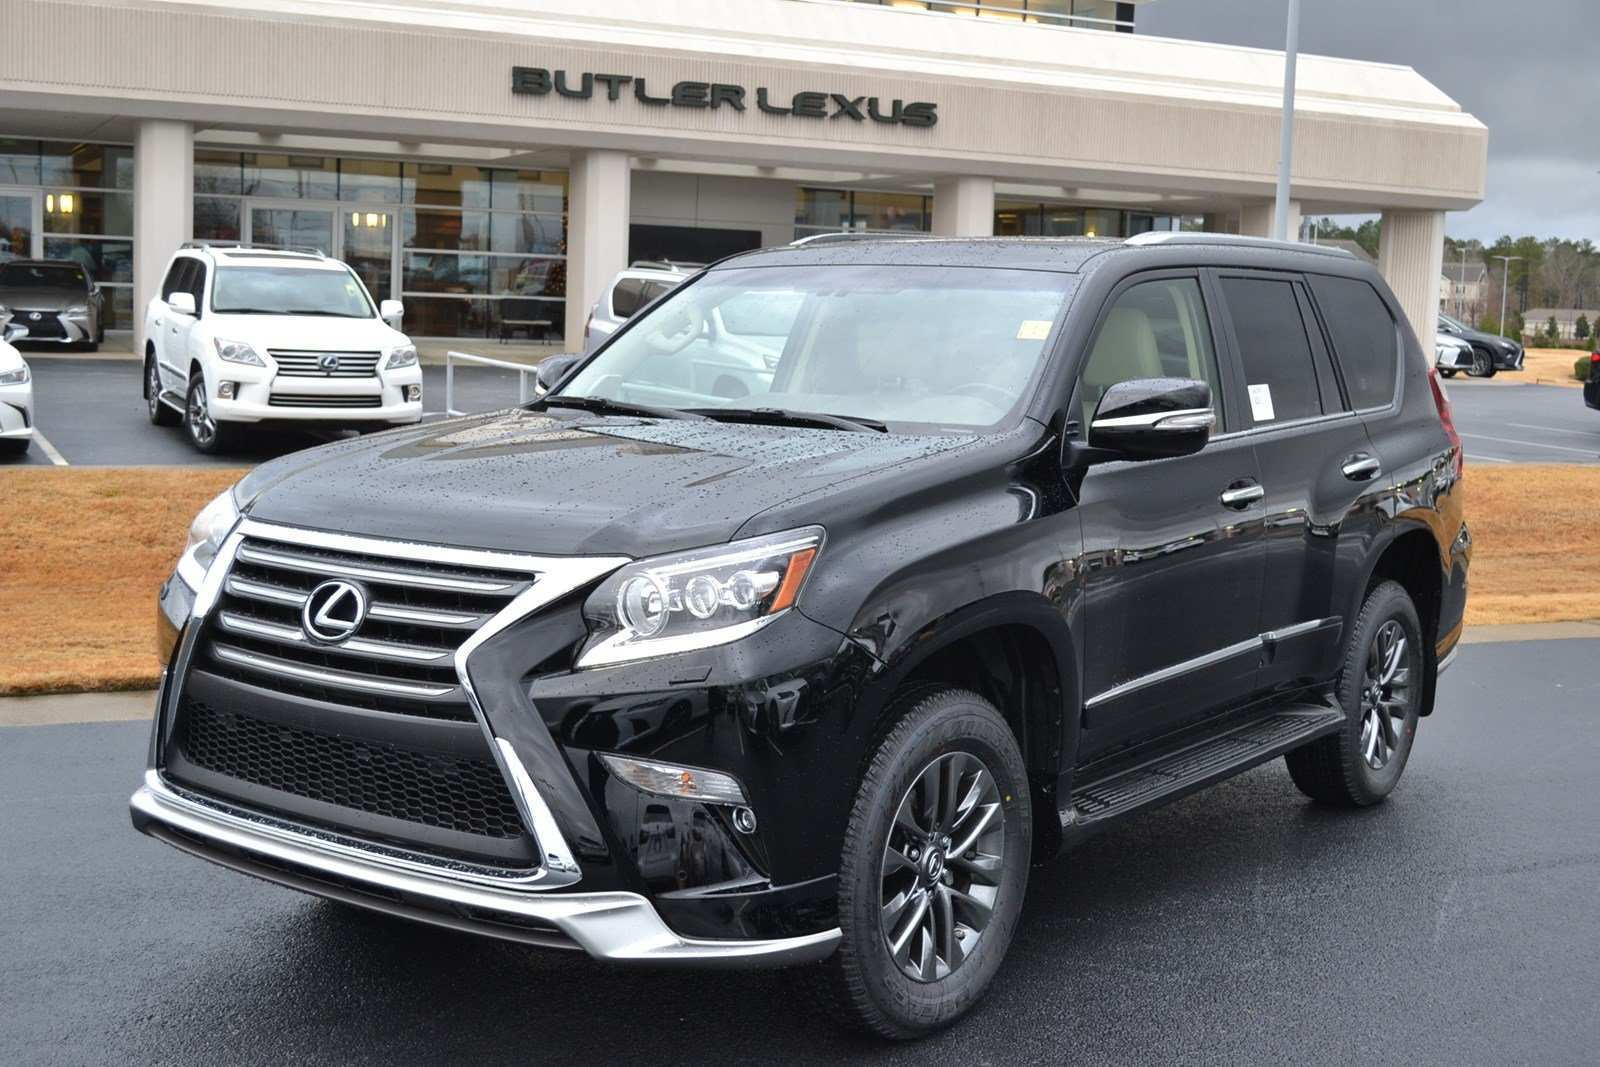 42 A 2019 Lexus GX 460 Review